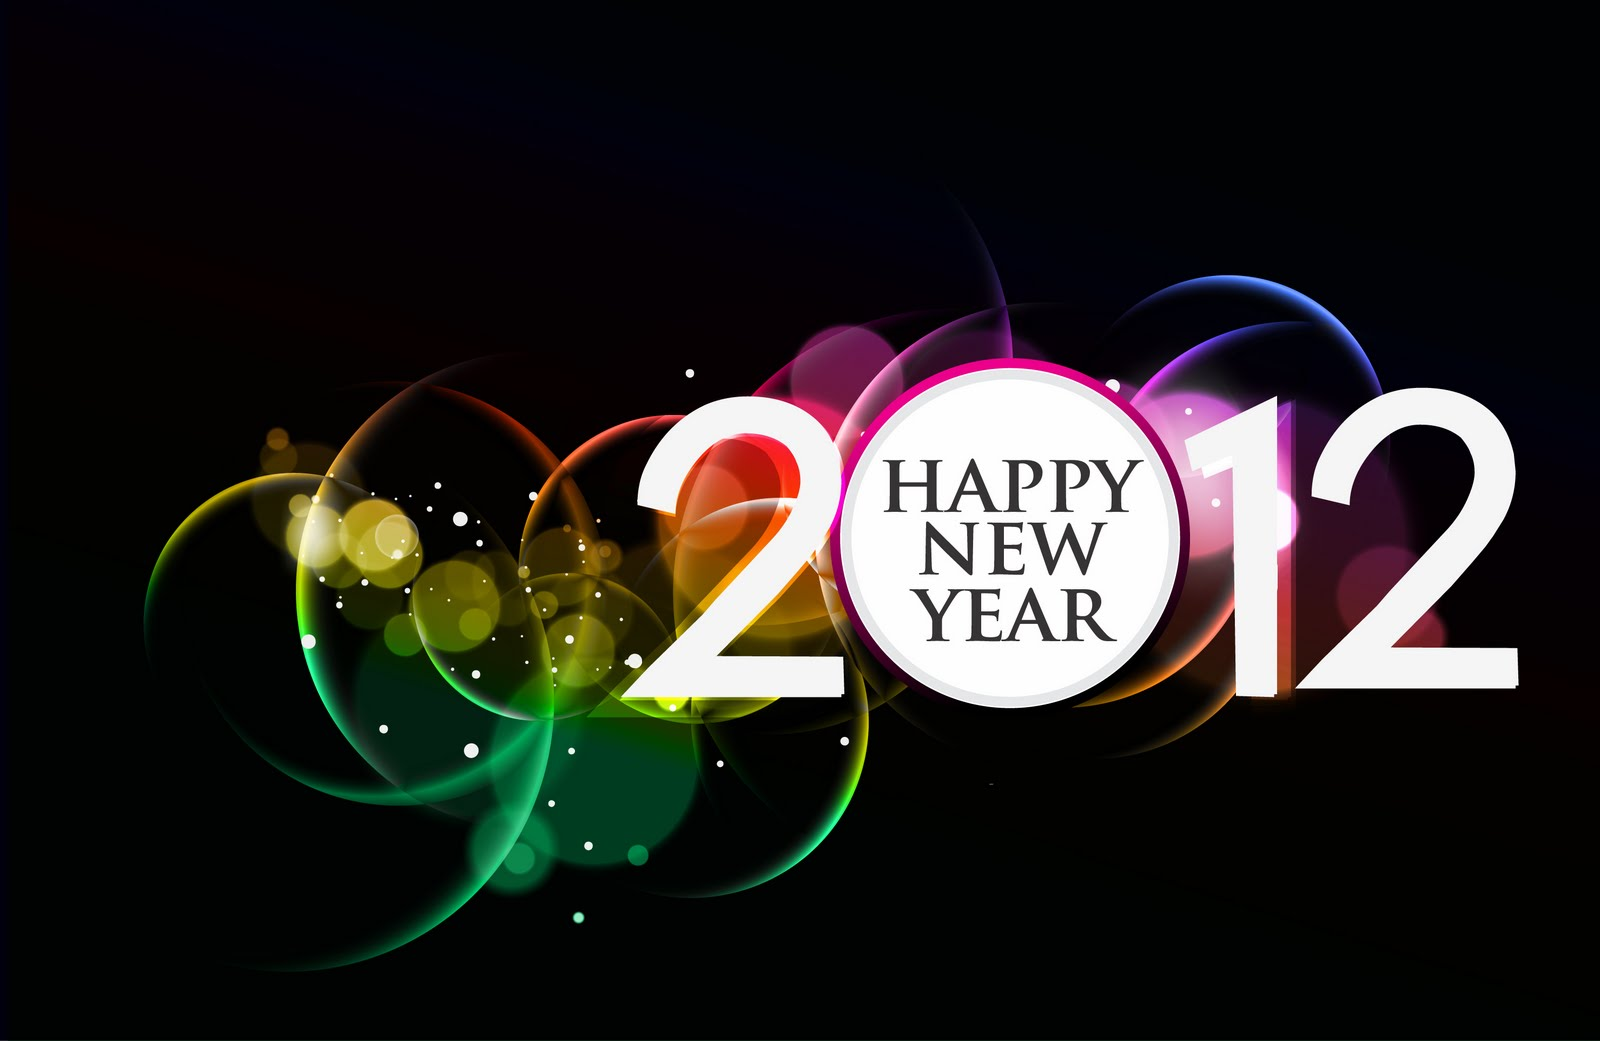 Happy New Year 2012 Wallpaper. 1600 x 1041.Best Happy New Year Wallpapers